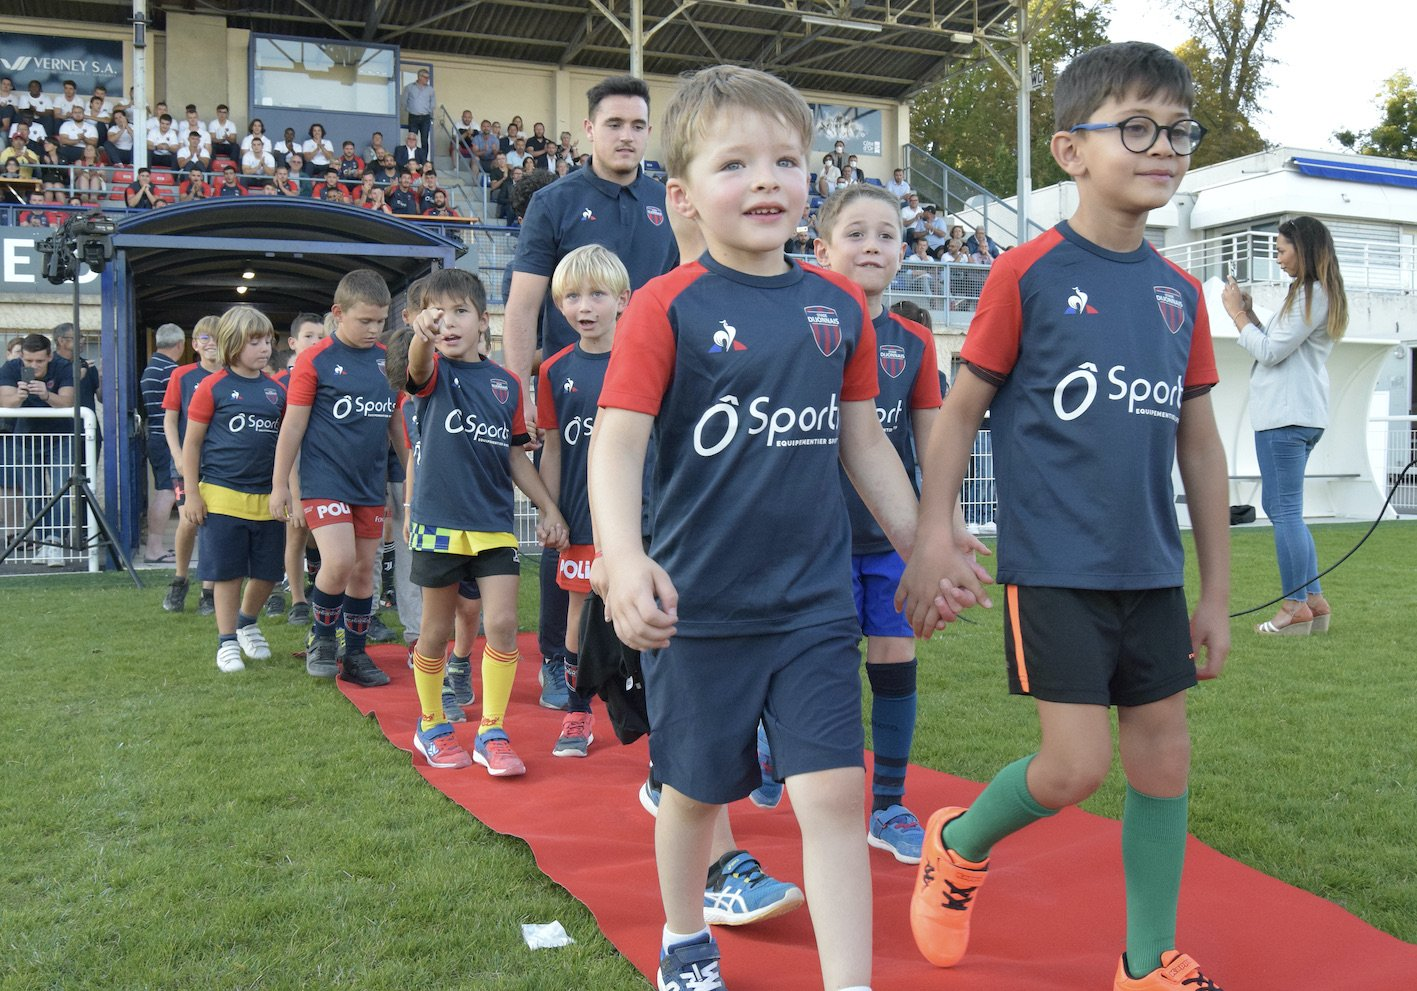 RUGBY: The presentation of the Stade Dijonnais groups in photos